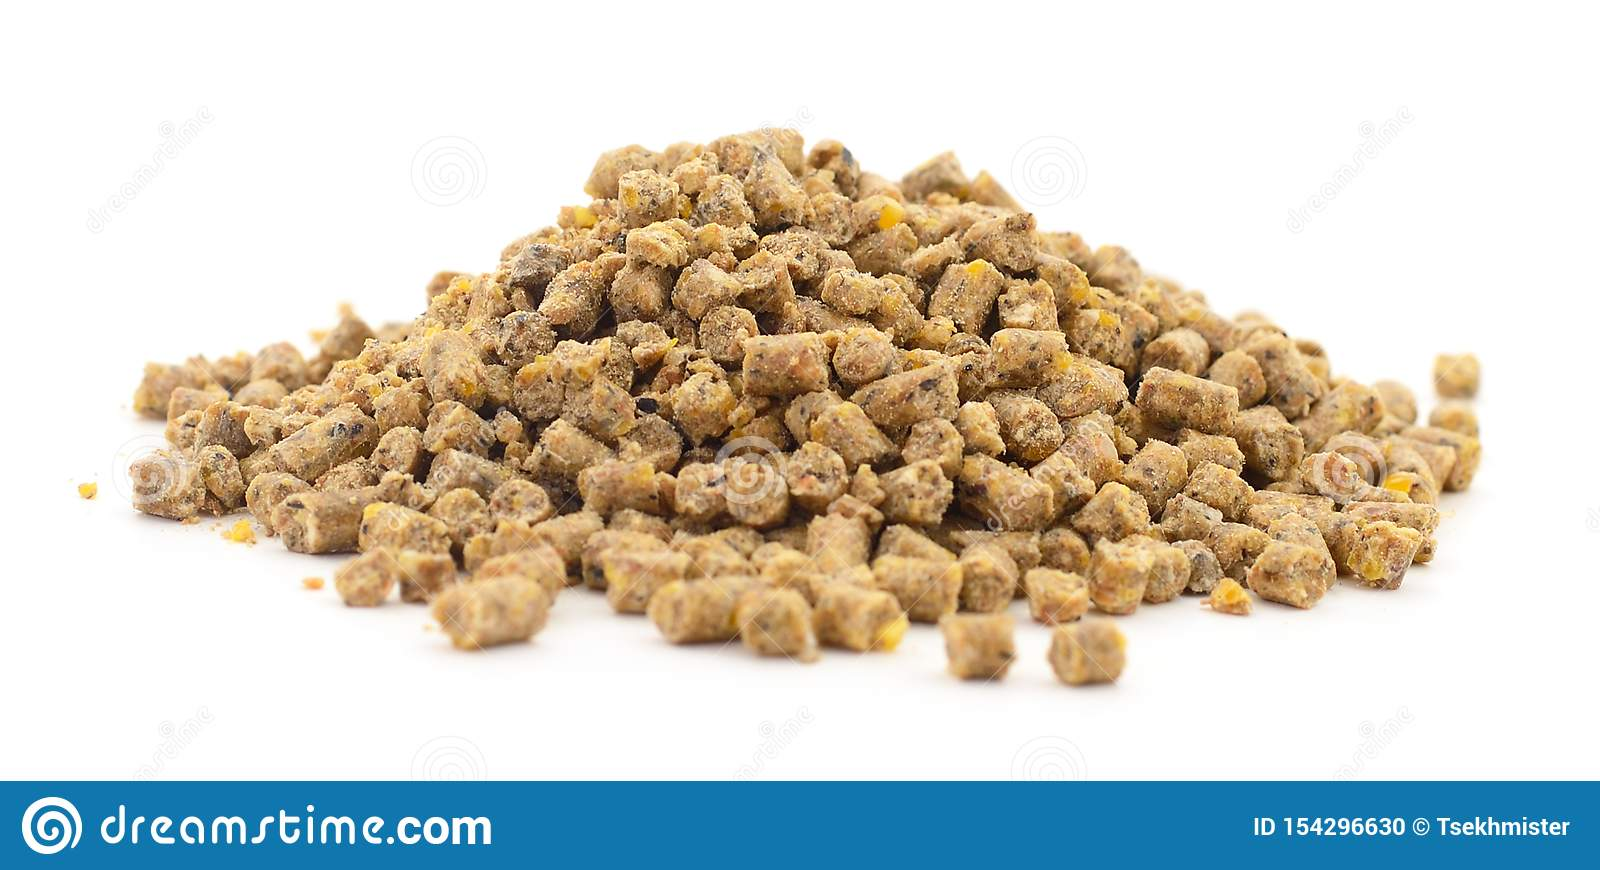 155 001 Animal Feed Photos Free Royalty Free Stock Photos From Dreamstime